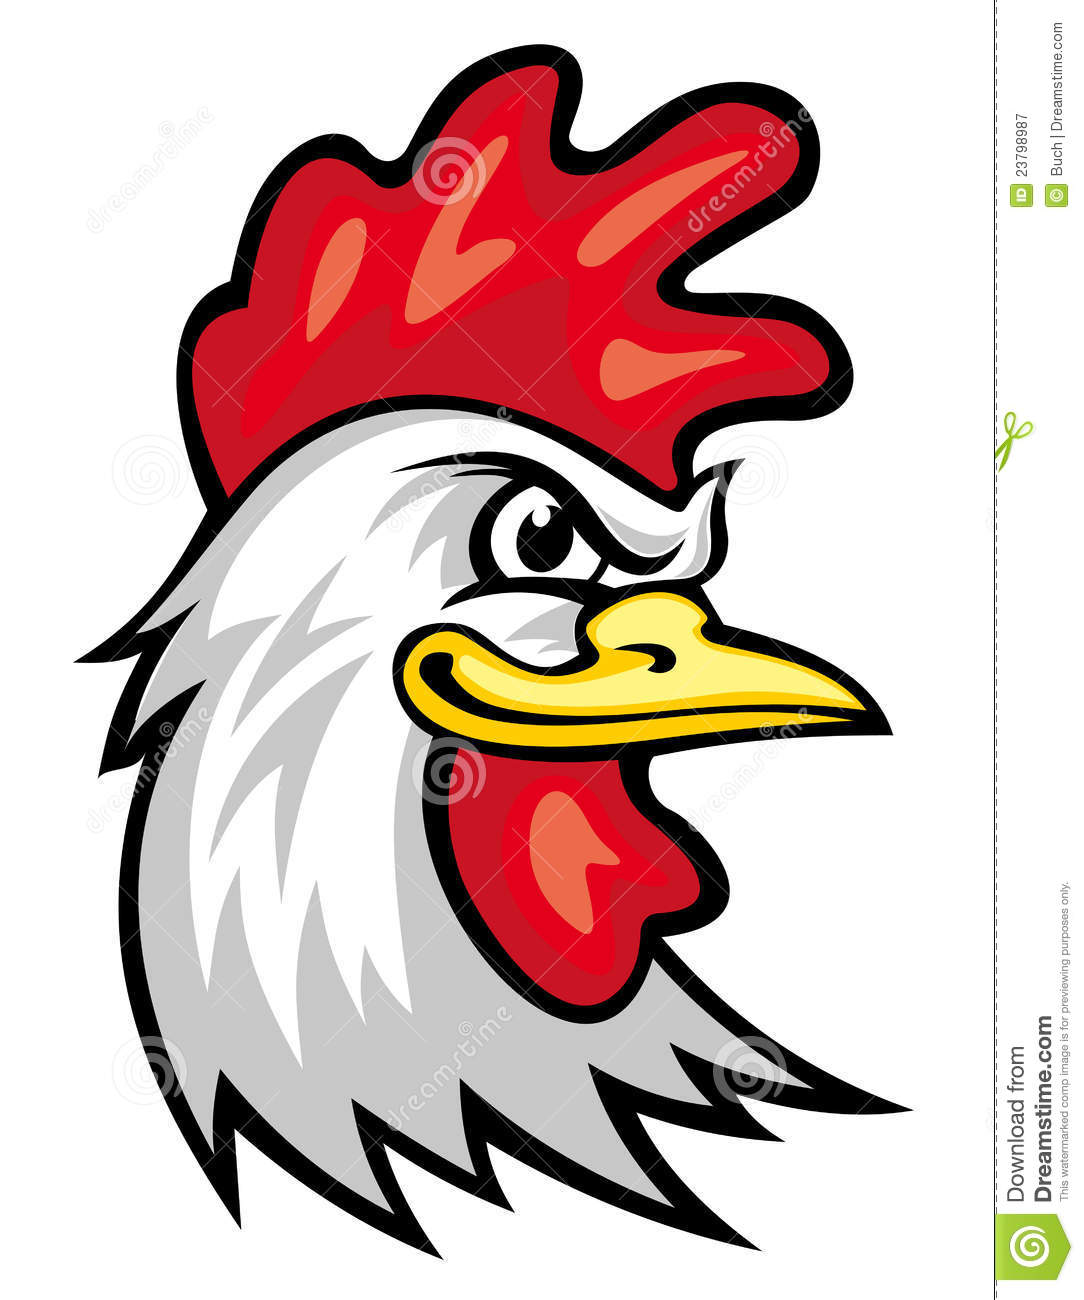 Rooster Mascot Royalty Free Stock Photography Image 23798987